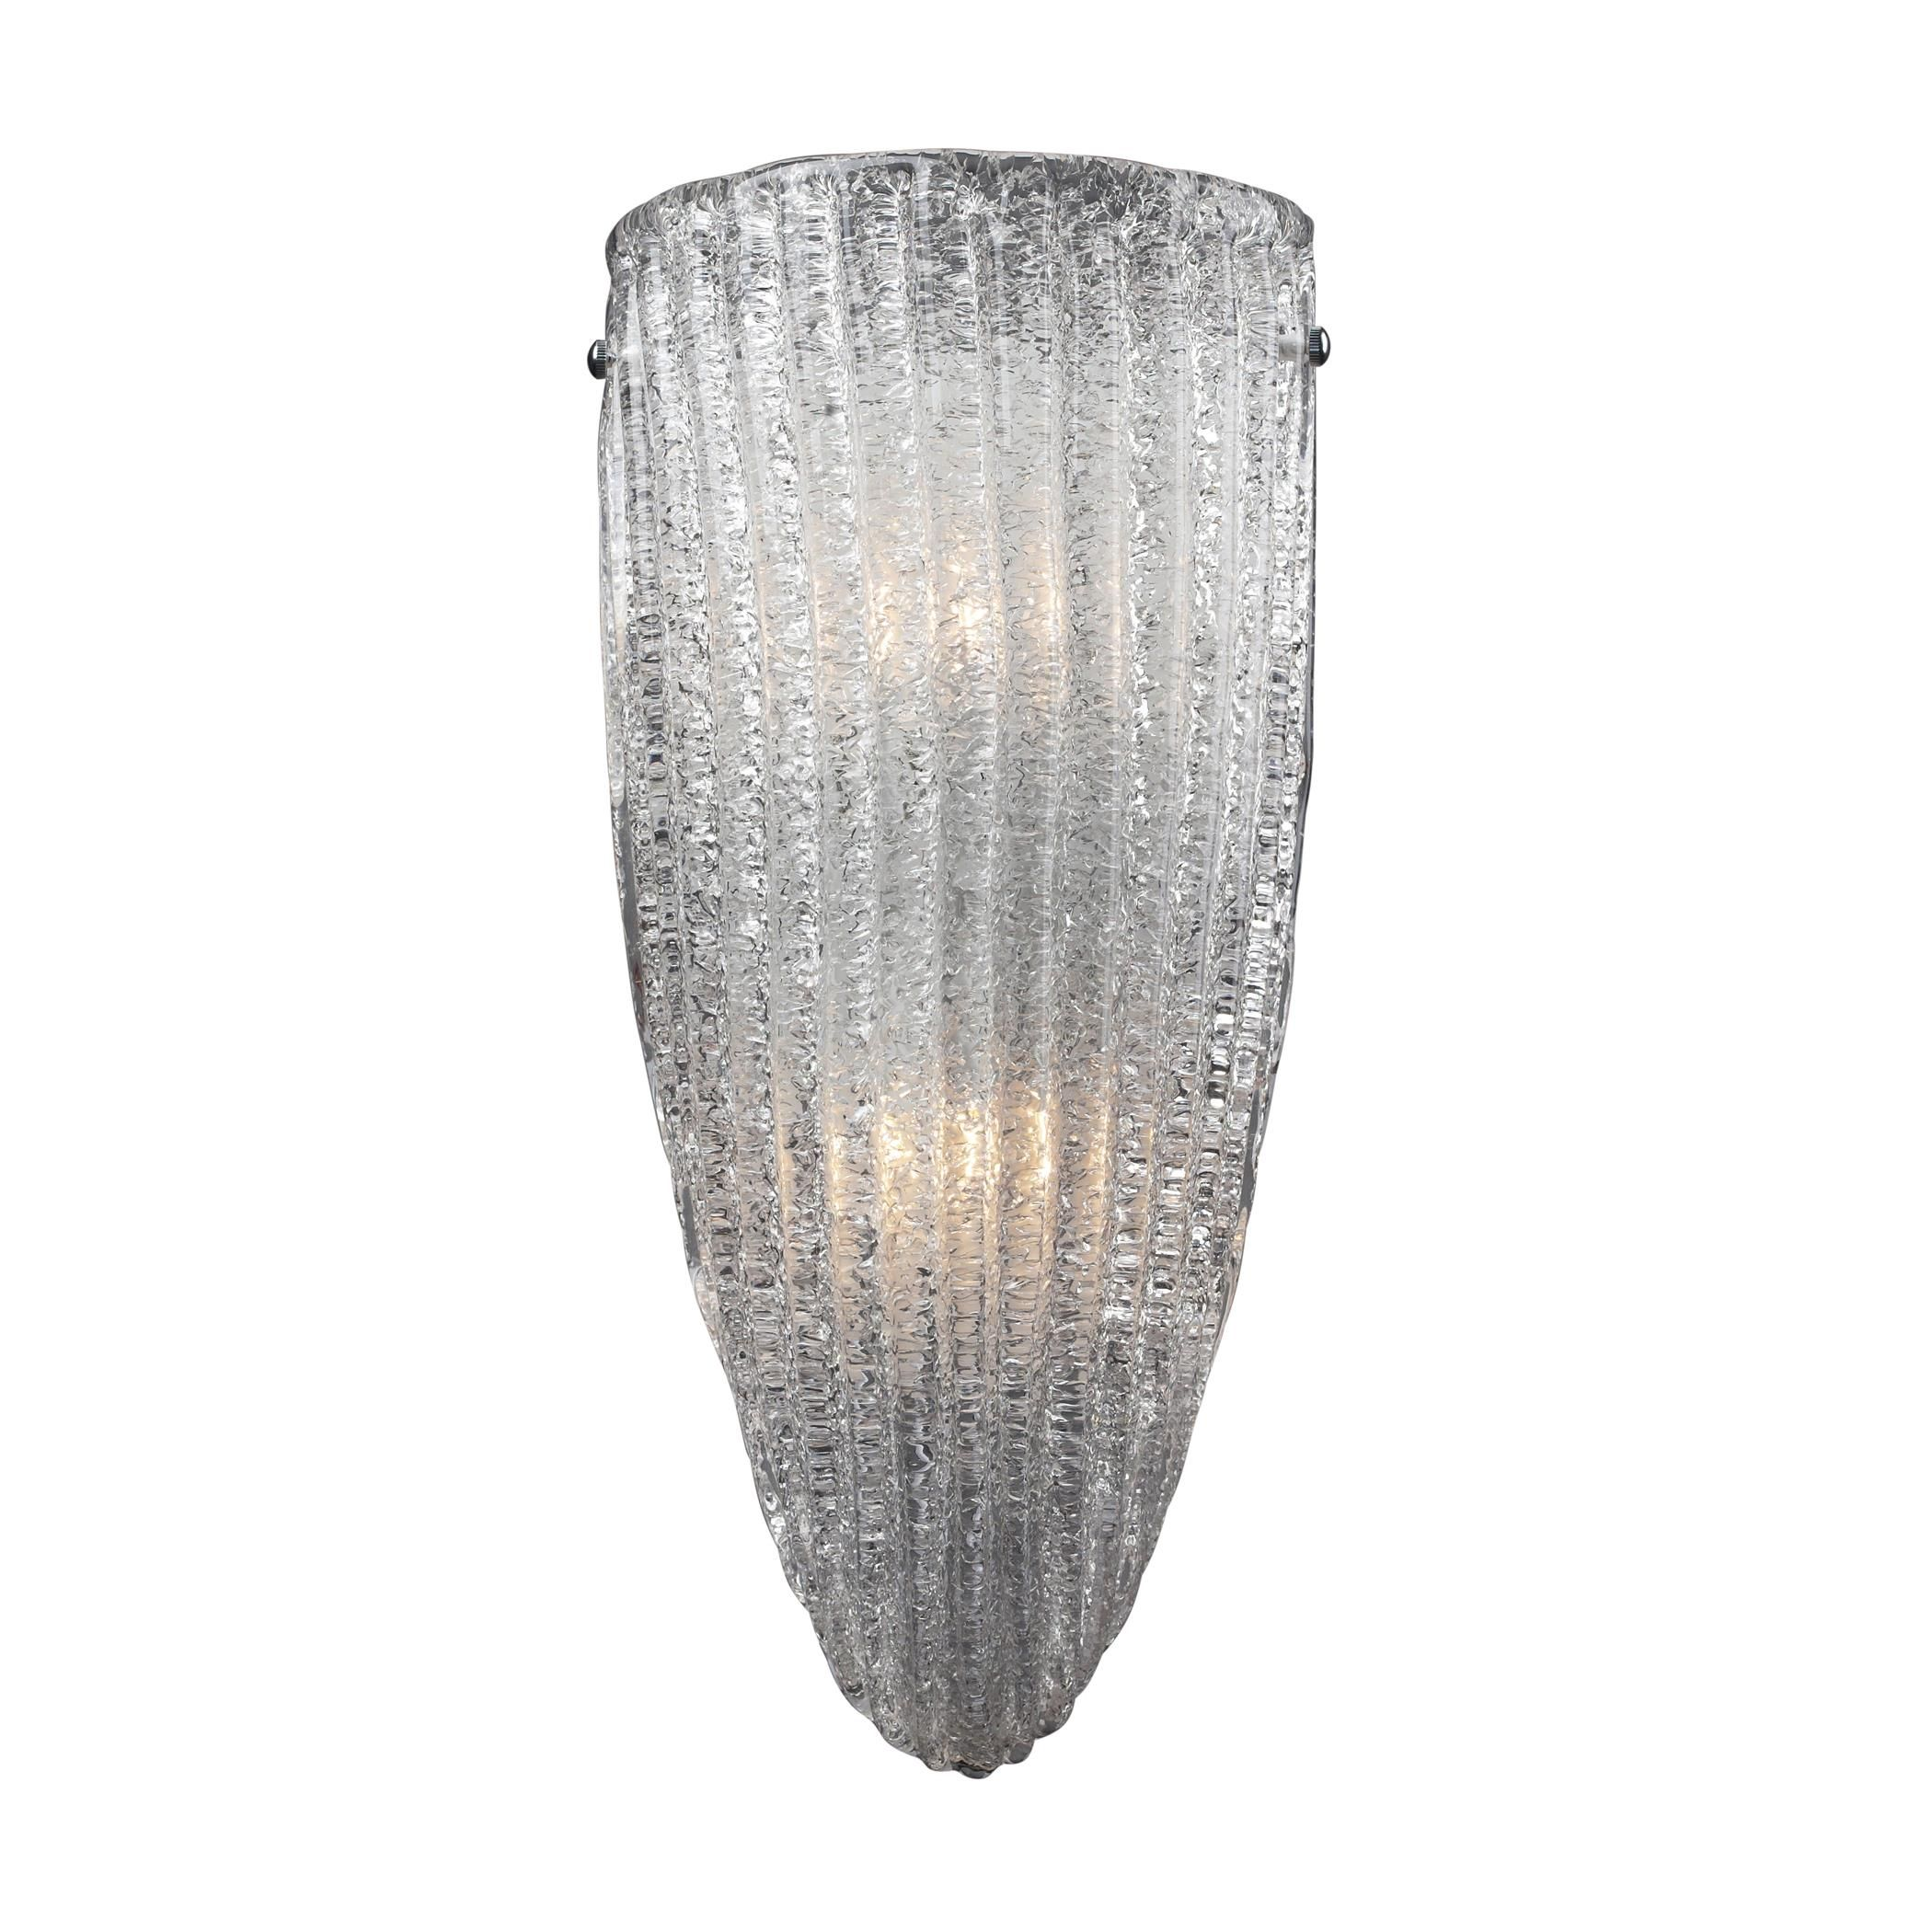 Buy the Elk Lighting 10270/2 Wall Sconces at LightingEtc.com. This item  sc 1 st  Pinterest & Buy the Elk Lighting 10270/2 Wall Sconces at LightingEtc.com. This ... azcodes.com